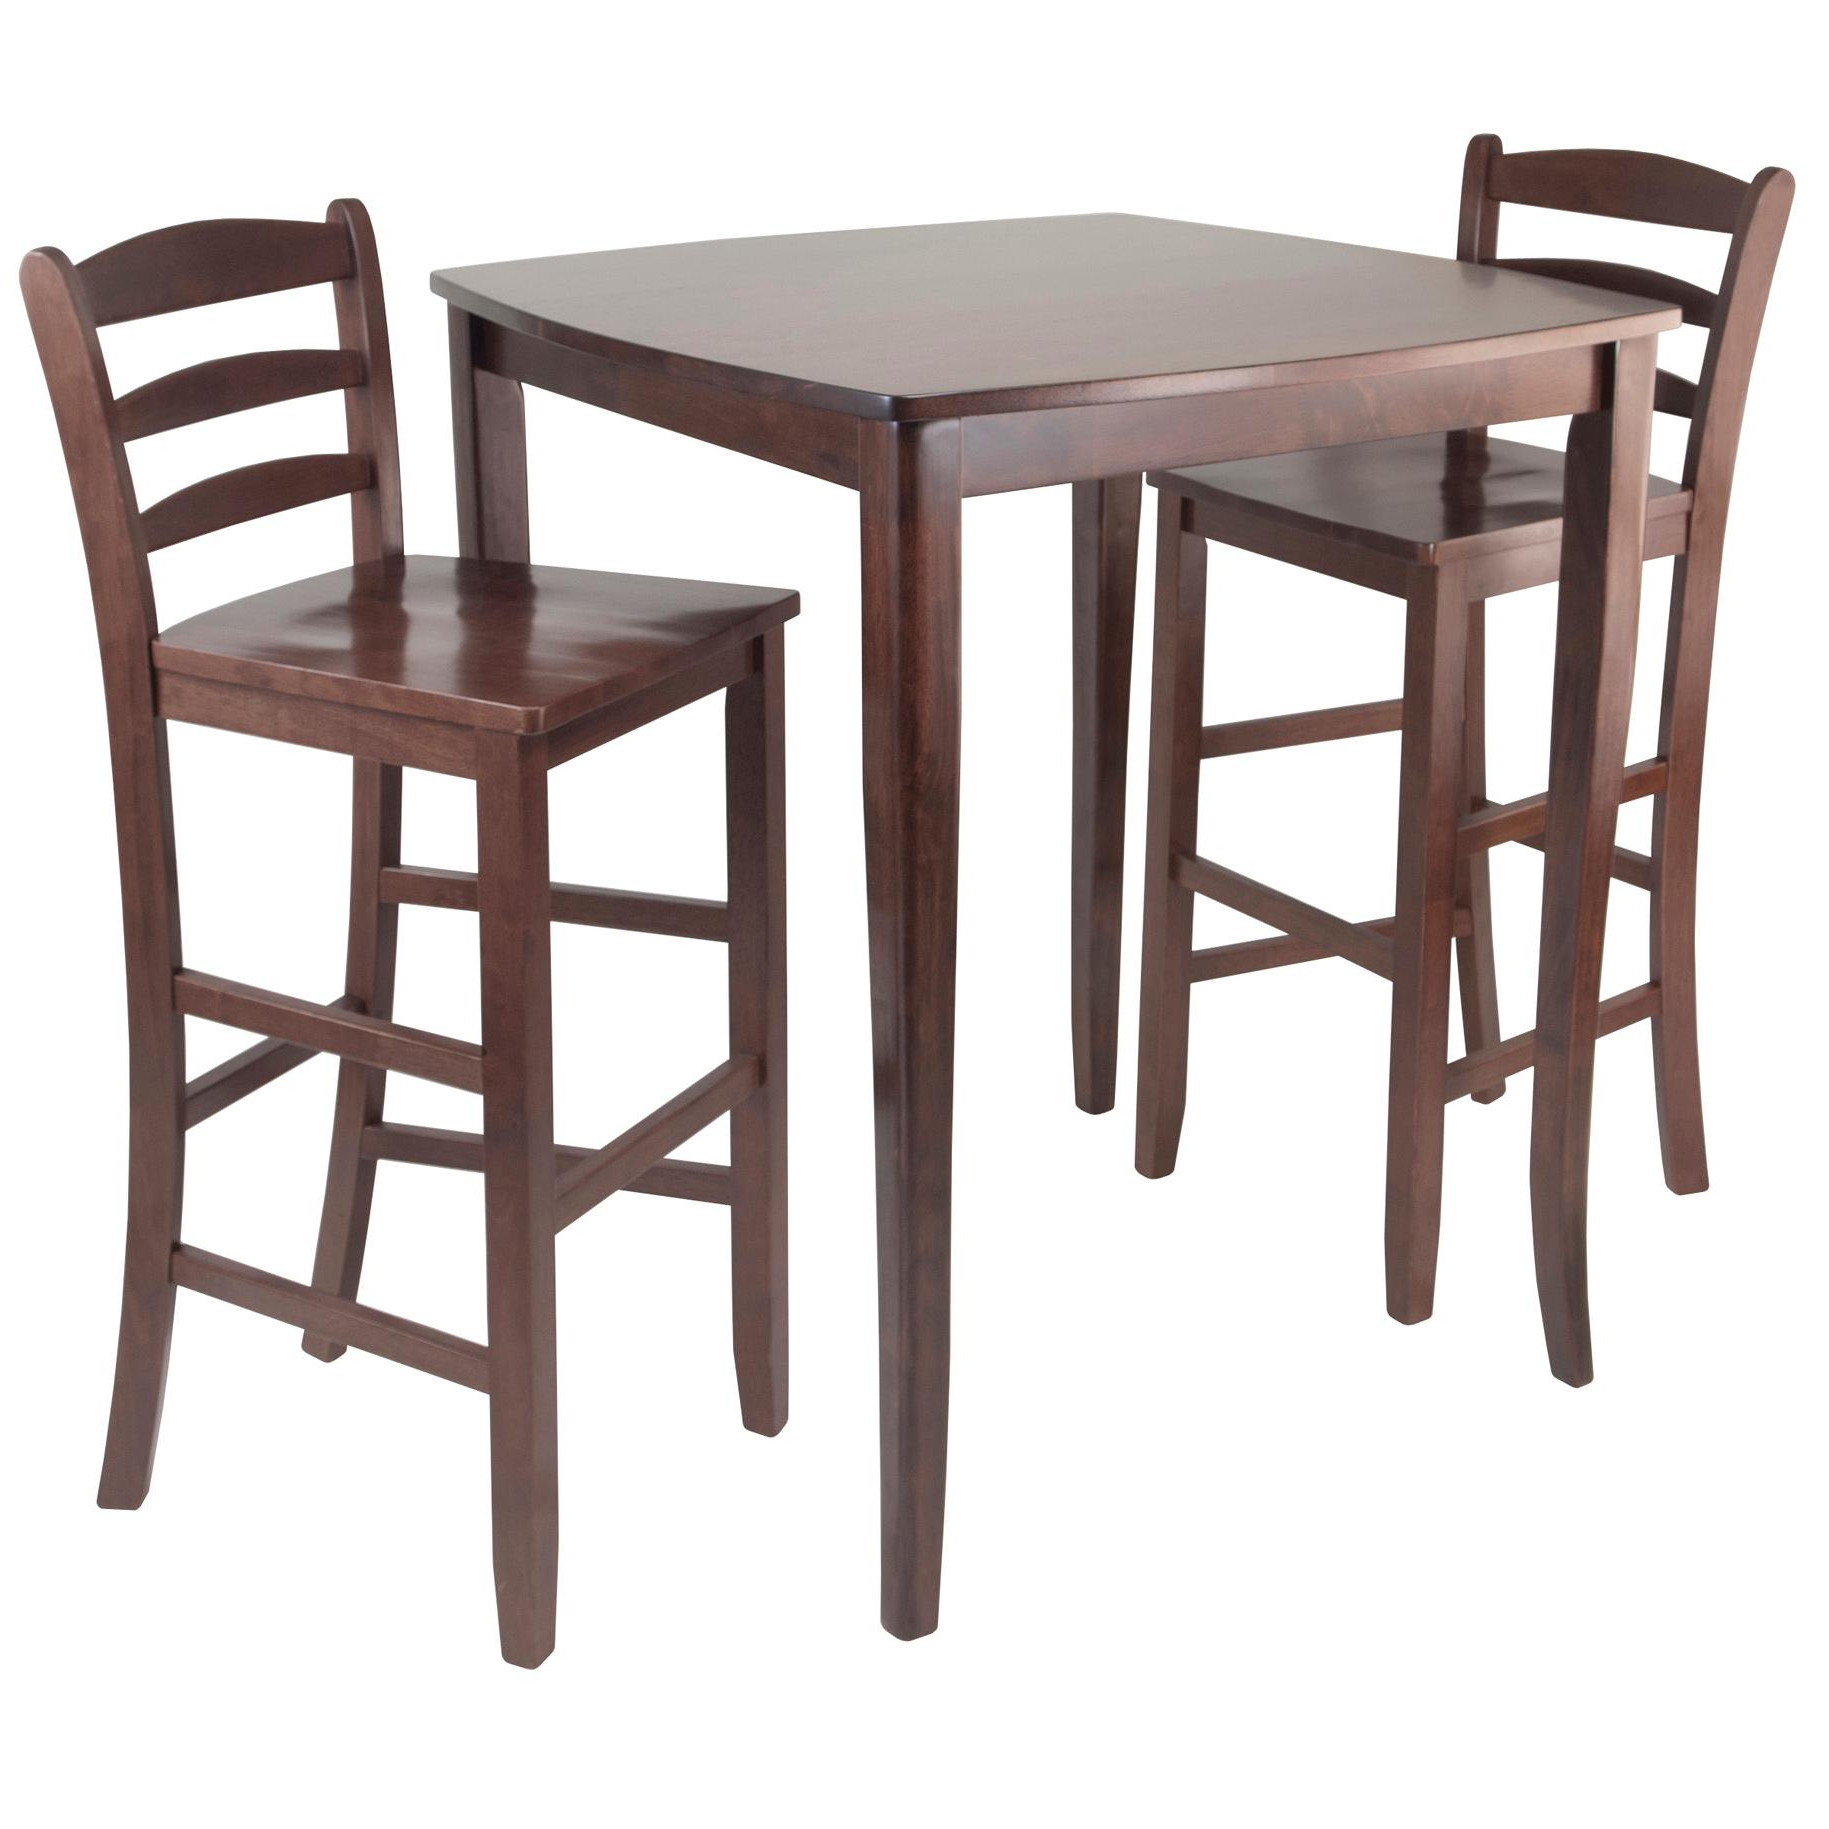 Winsome Inglewood High/pub Dining Table With Ladder Back Stool, 3 Piece In Well Known Winsome 3 Piece Counter Height Dining Sets (View 17 of 20)